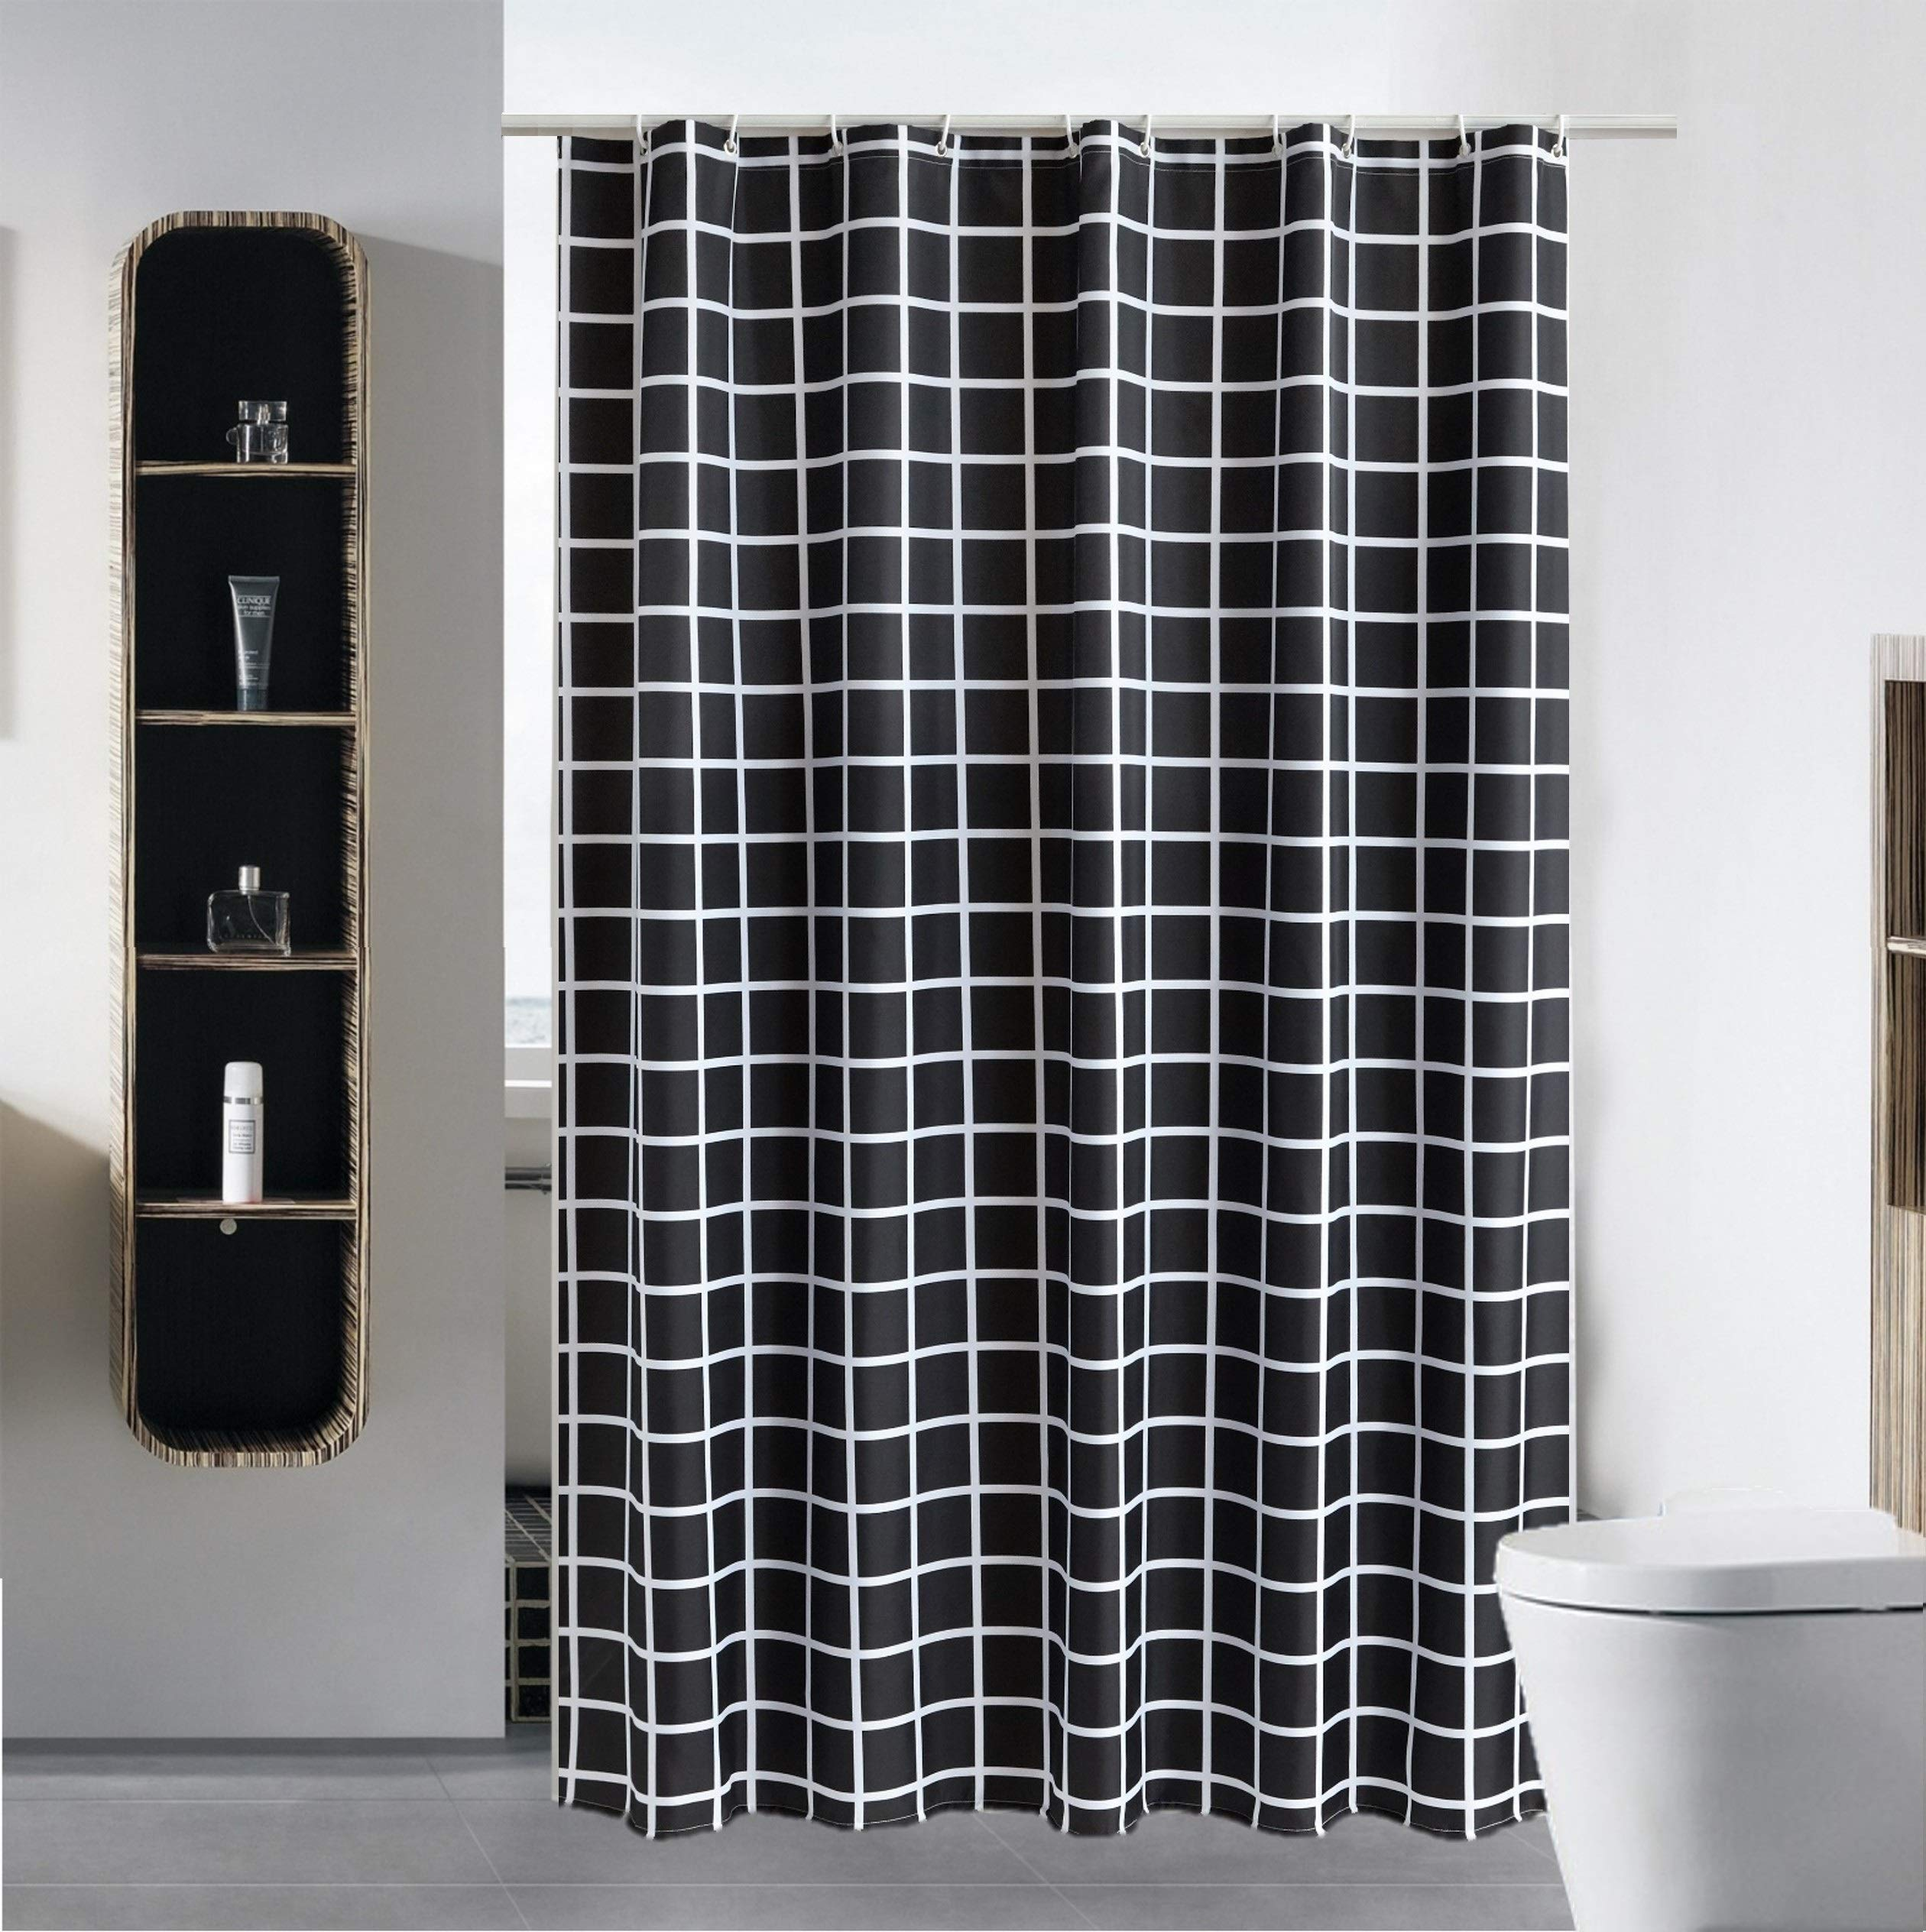 Luxury Fabric Shower Curtain Liner Water Repellent Fabric Mildew Resistant Washable Cloth (Hotel Quality, Eco Friendly, Heavy Weight Hem) with White Plastic Hooks - 72'' x 84'', Extra Long, Black Grid